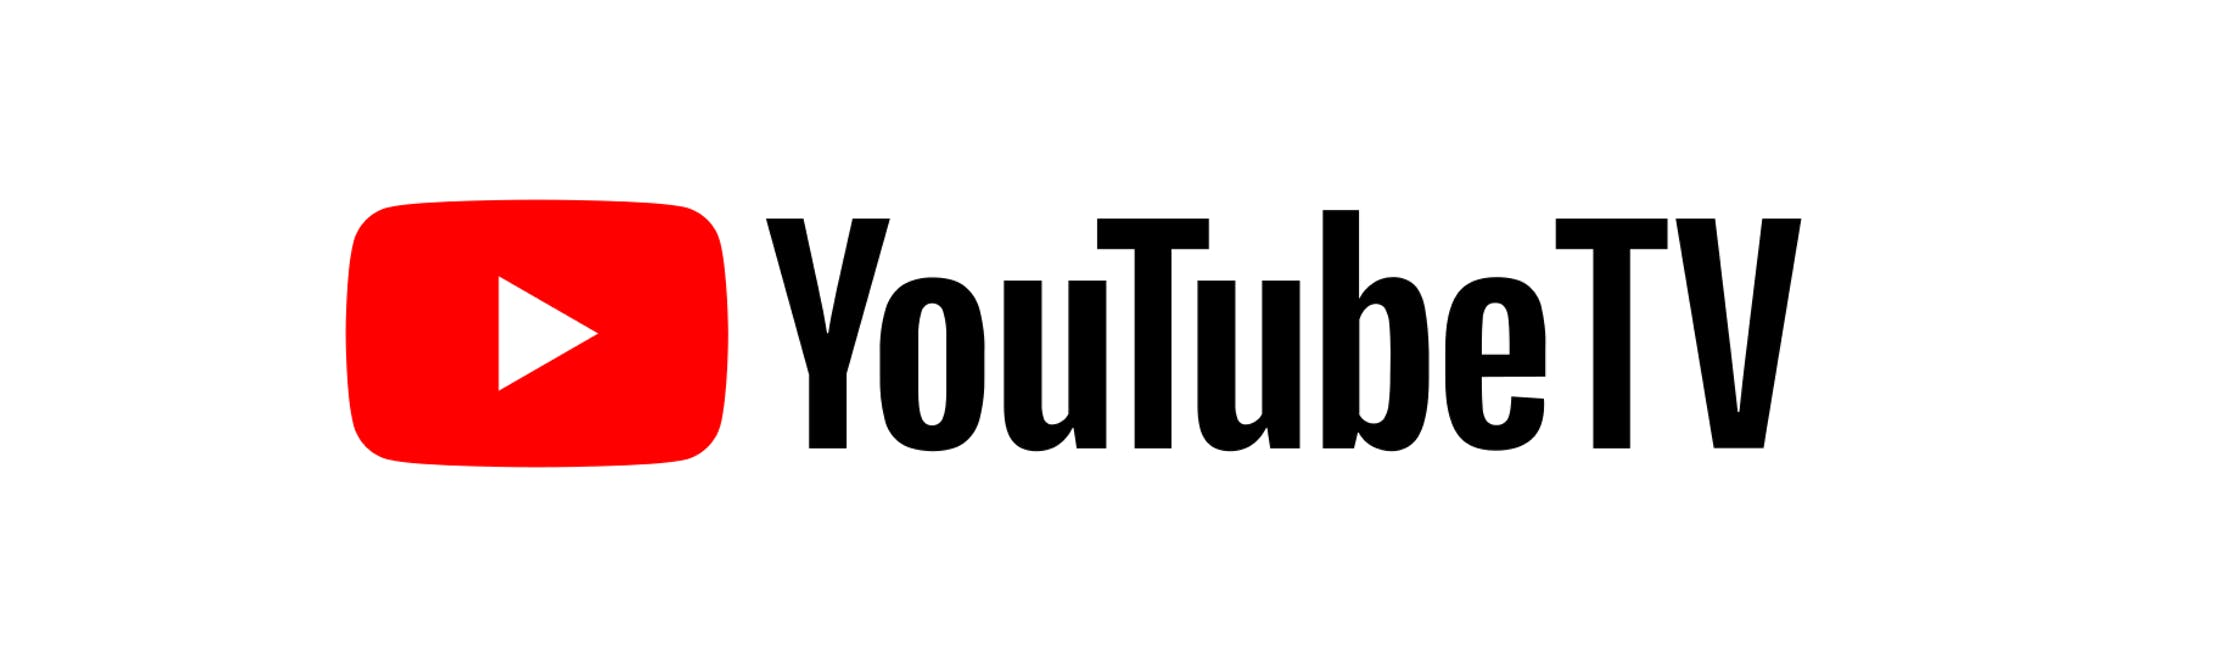 Youtube TV Streaming Logo